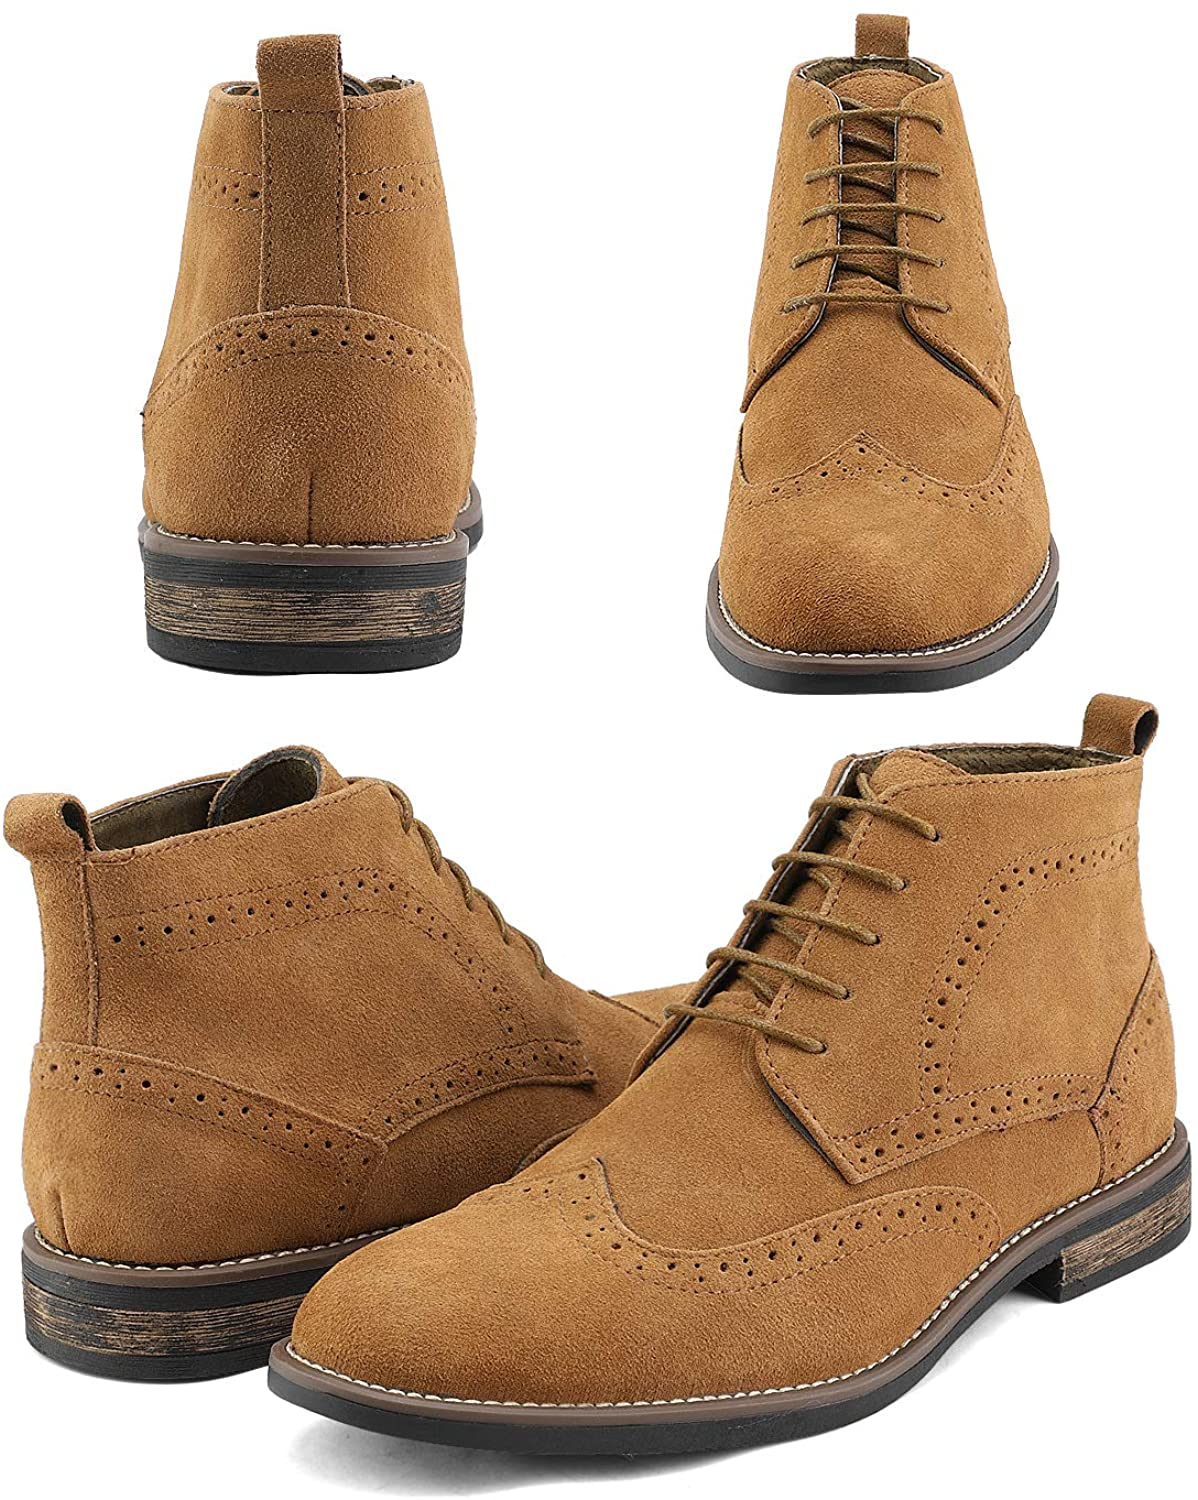 Bruno Marc Men's Urban-01 Suede Leather Lace Up Chukka Desert Boots